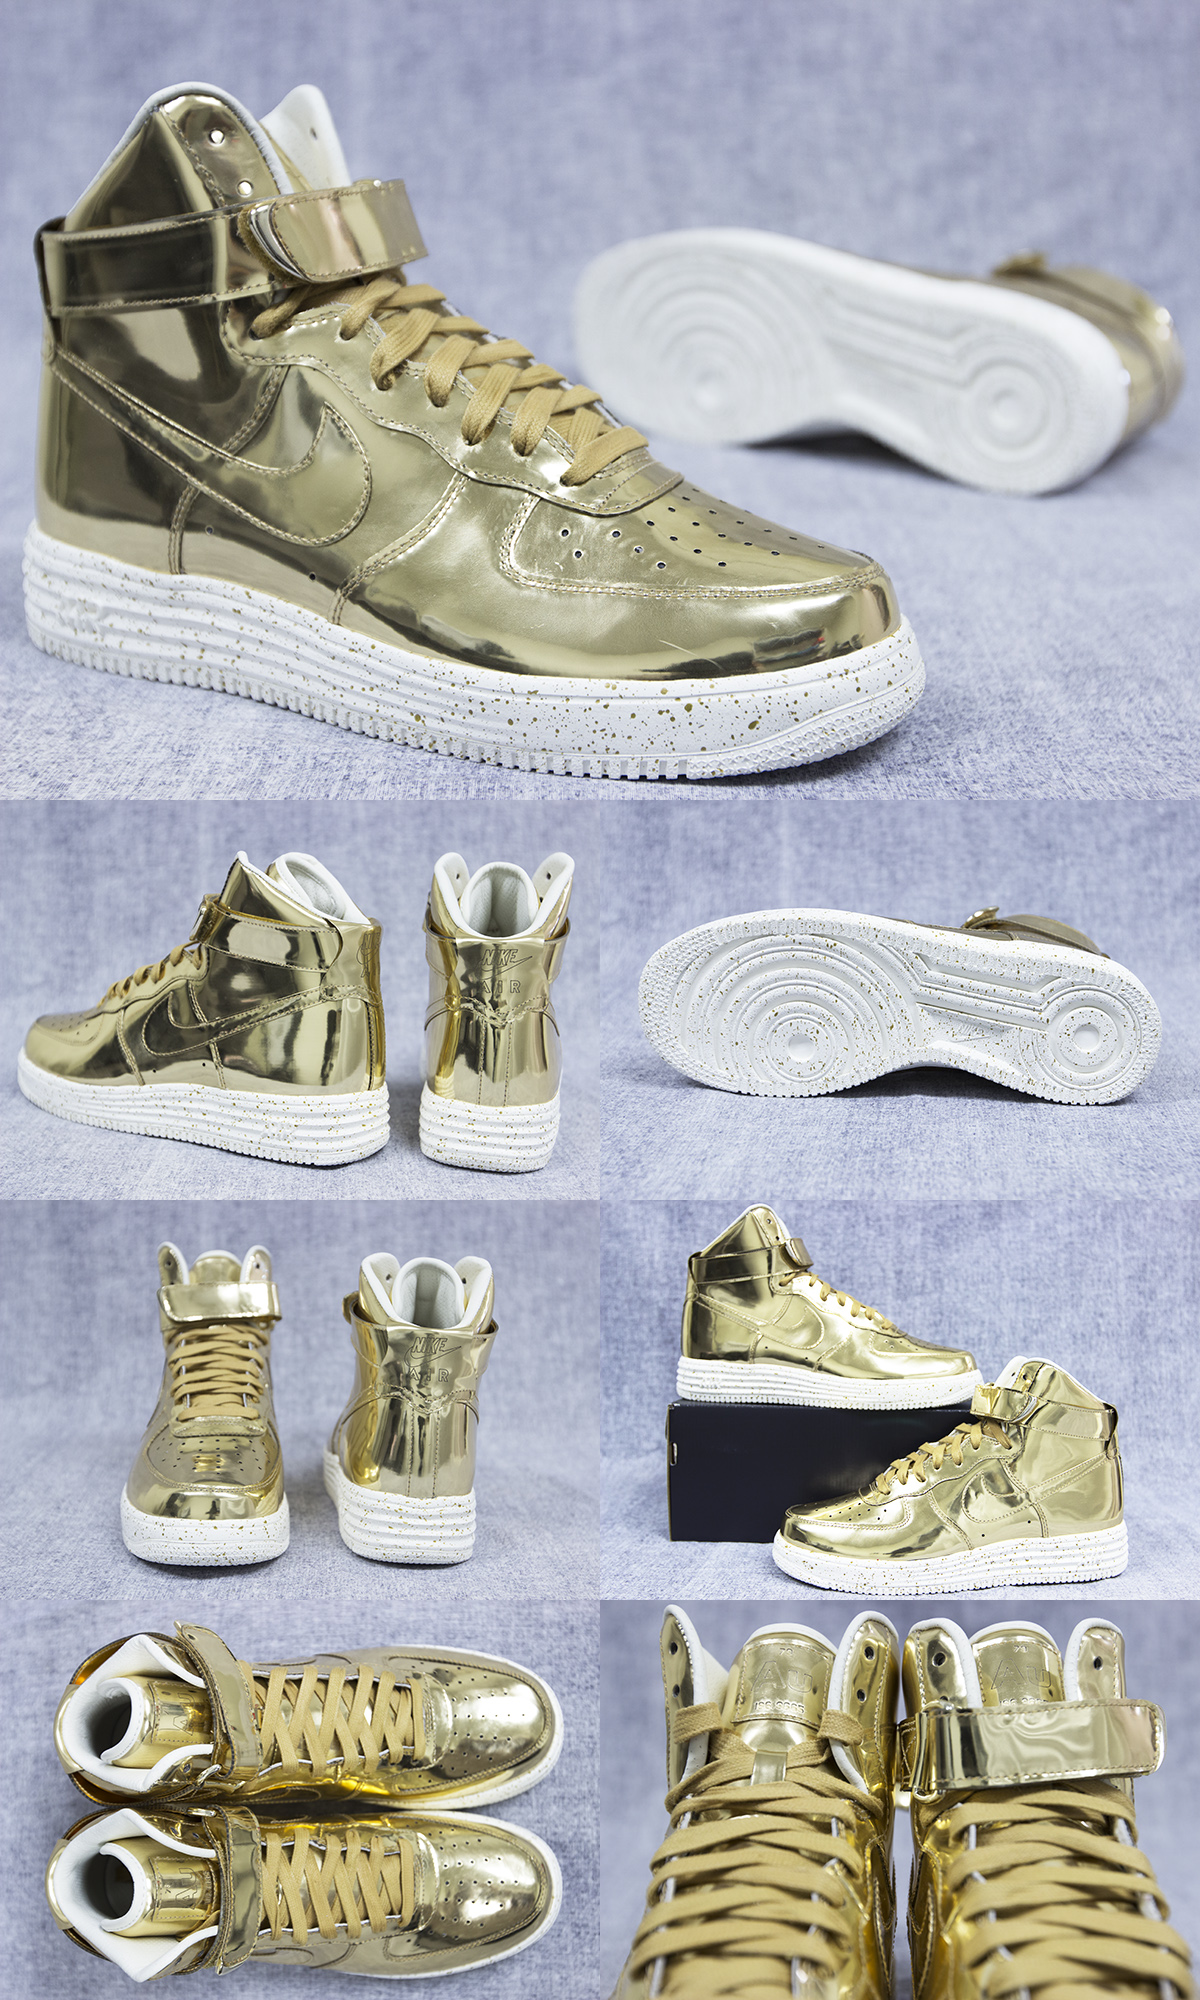 Nike Lunar Force 1 Hi SP 652845 770 Metallic Gold High New DS Sz 8 5 9 9 5 | eBay